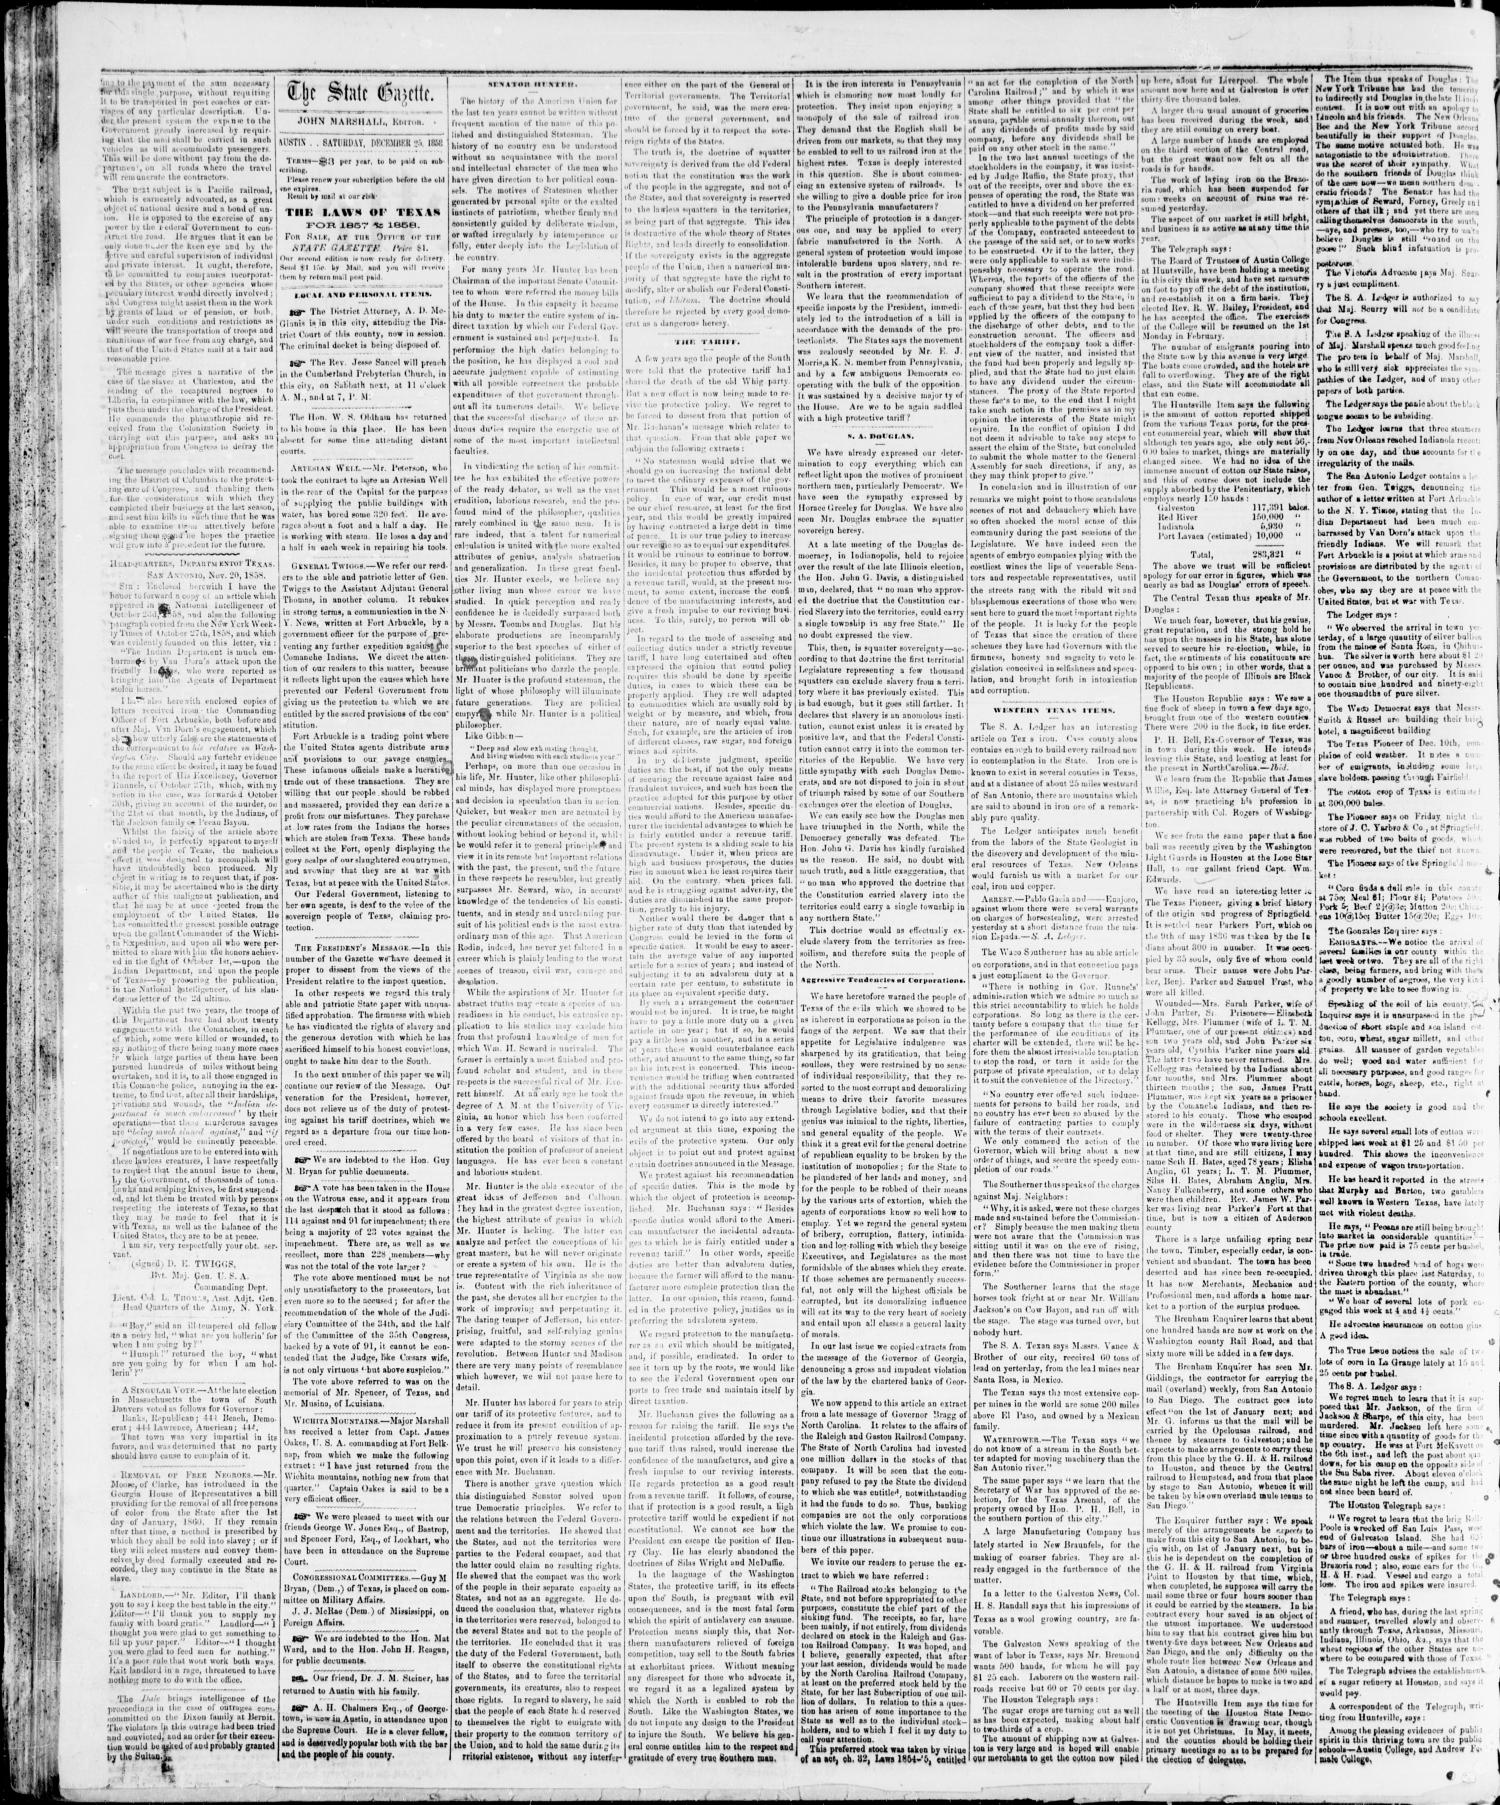 State Gazette. (Austin, Tex.), Vol. 10, No. 20, Ed. 1, Saturday, December 25, 1858                                                                                                      [Sequence #]: 2 of 4